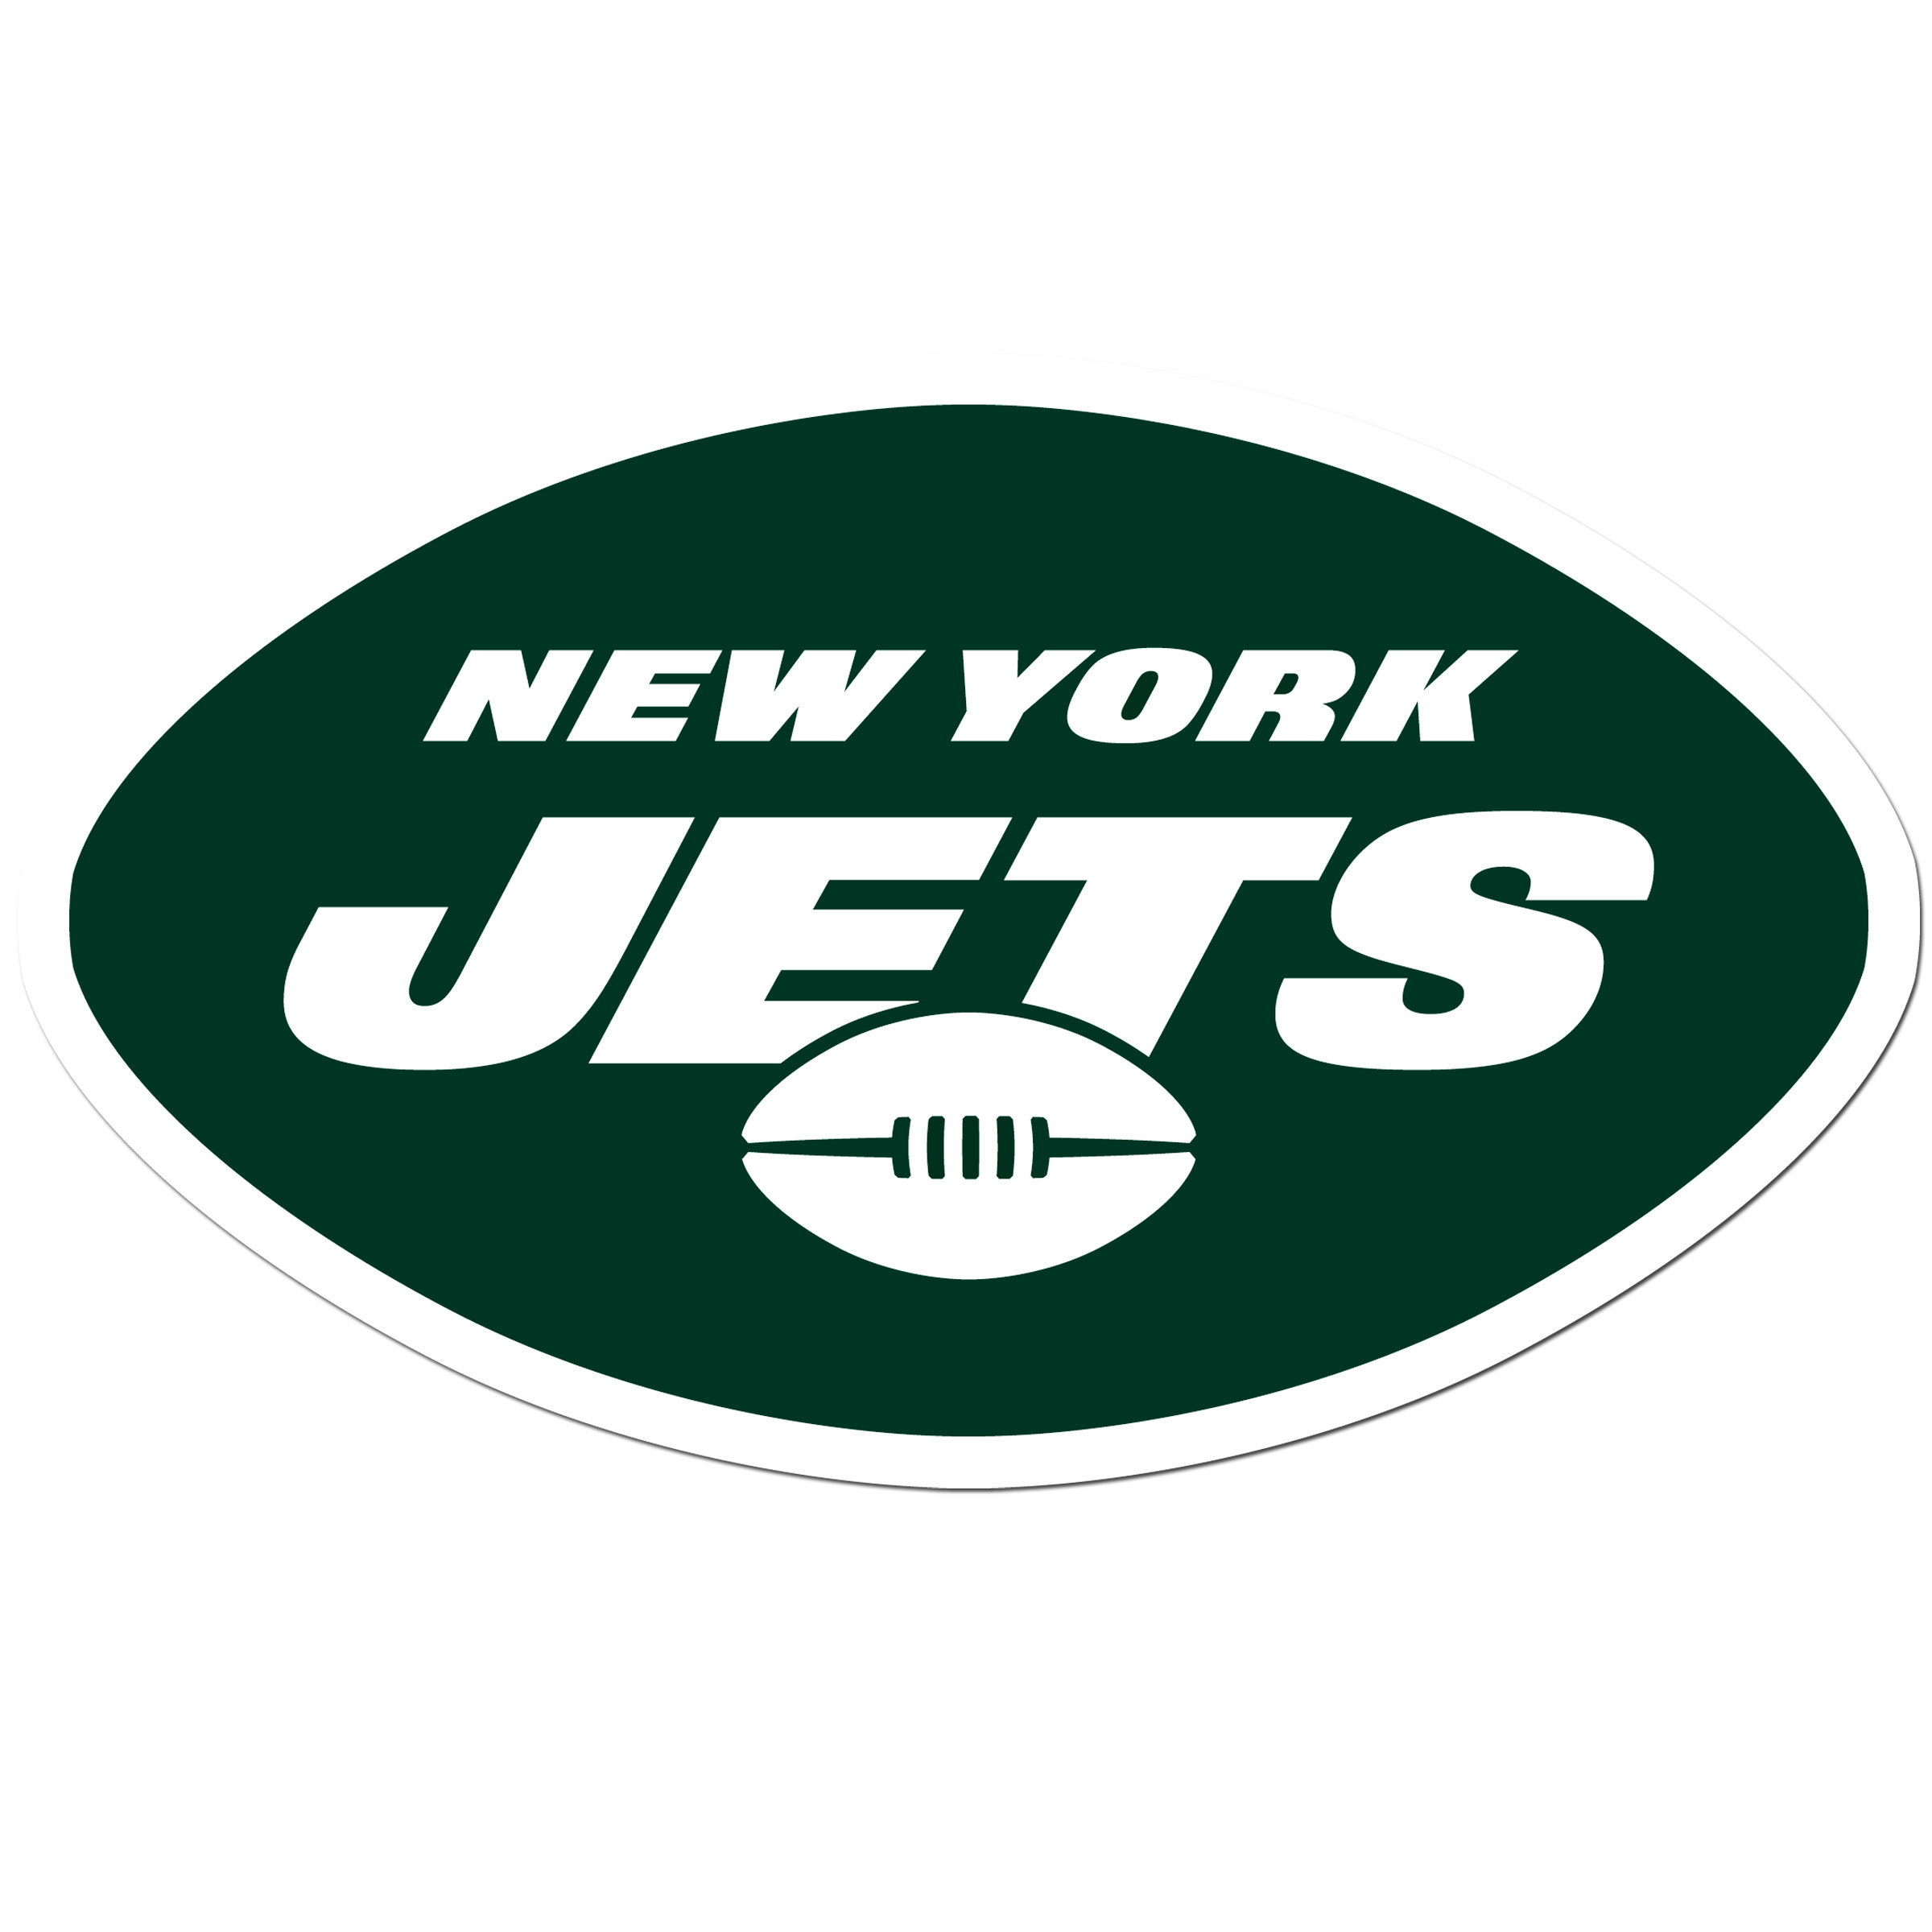 New York Jets 8 inch Auto Decal - This bold, 8 inch New York Jets is a great way to show off your team pride! The low tack vinyl decal is easily positioned and adjusted to make sure you get that logo in just the right spot on your vehicle. Designed to be used on the outside of the window.